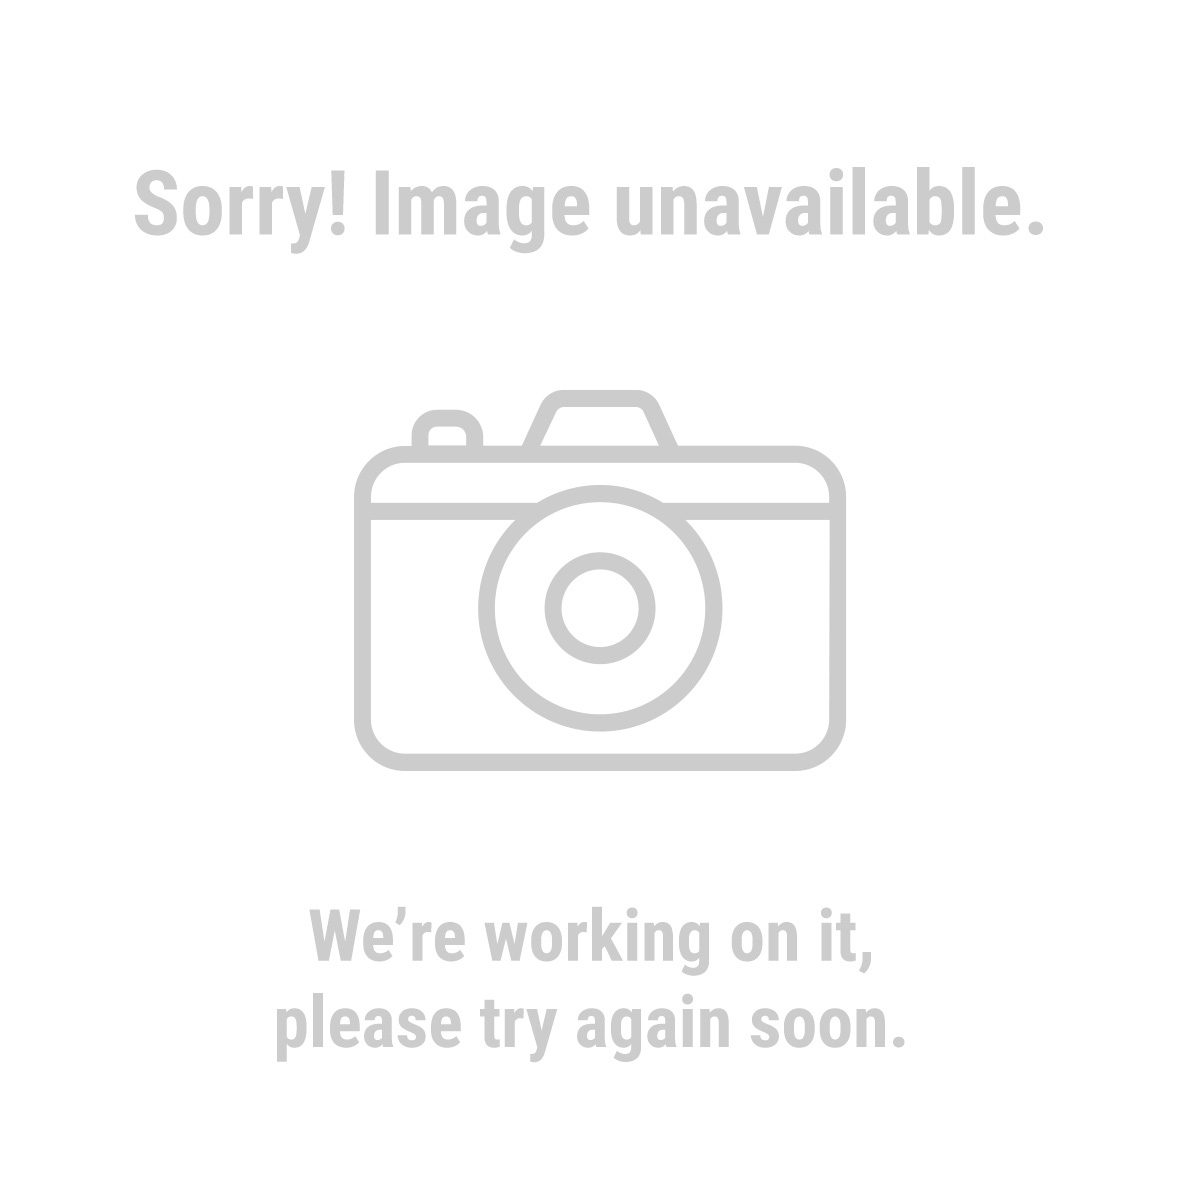 HARDY 90912 Coated Rubber Grip Gloves, Large